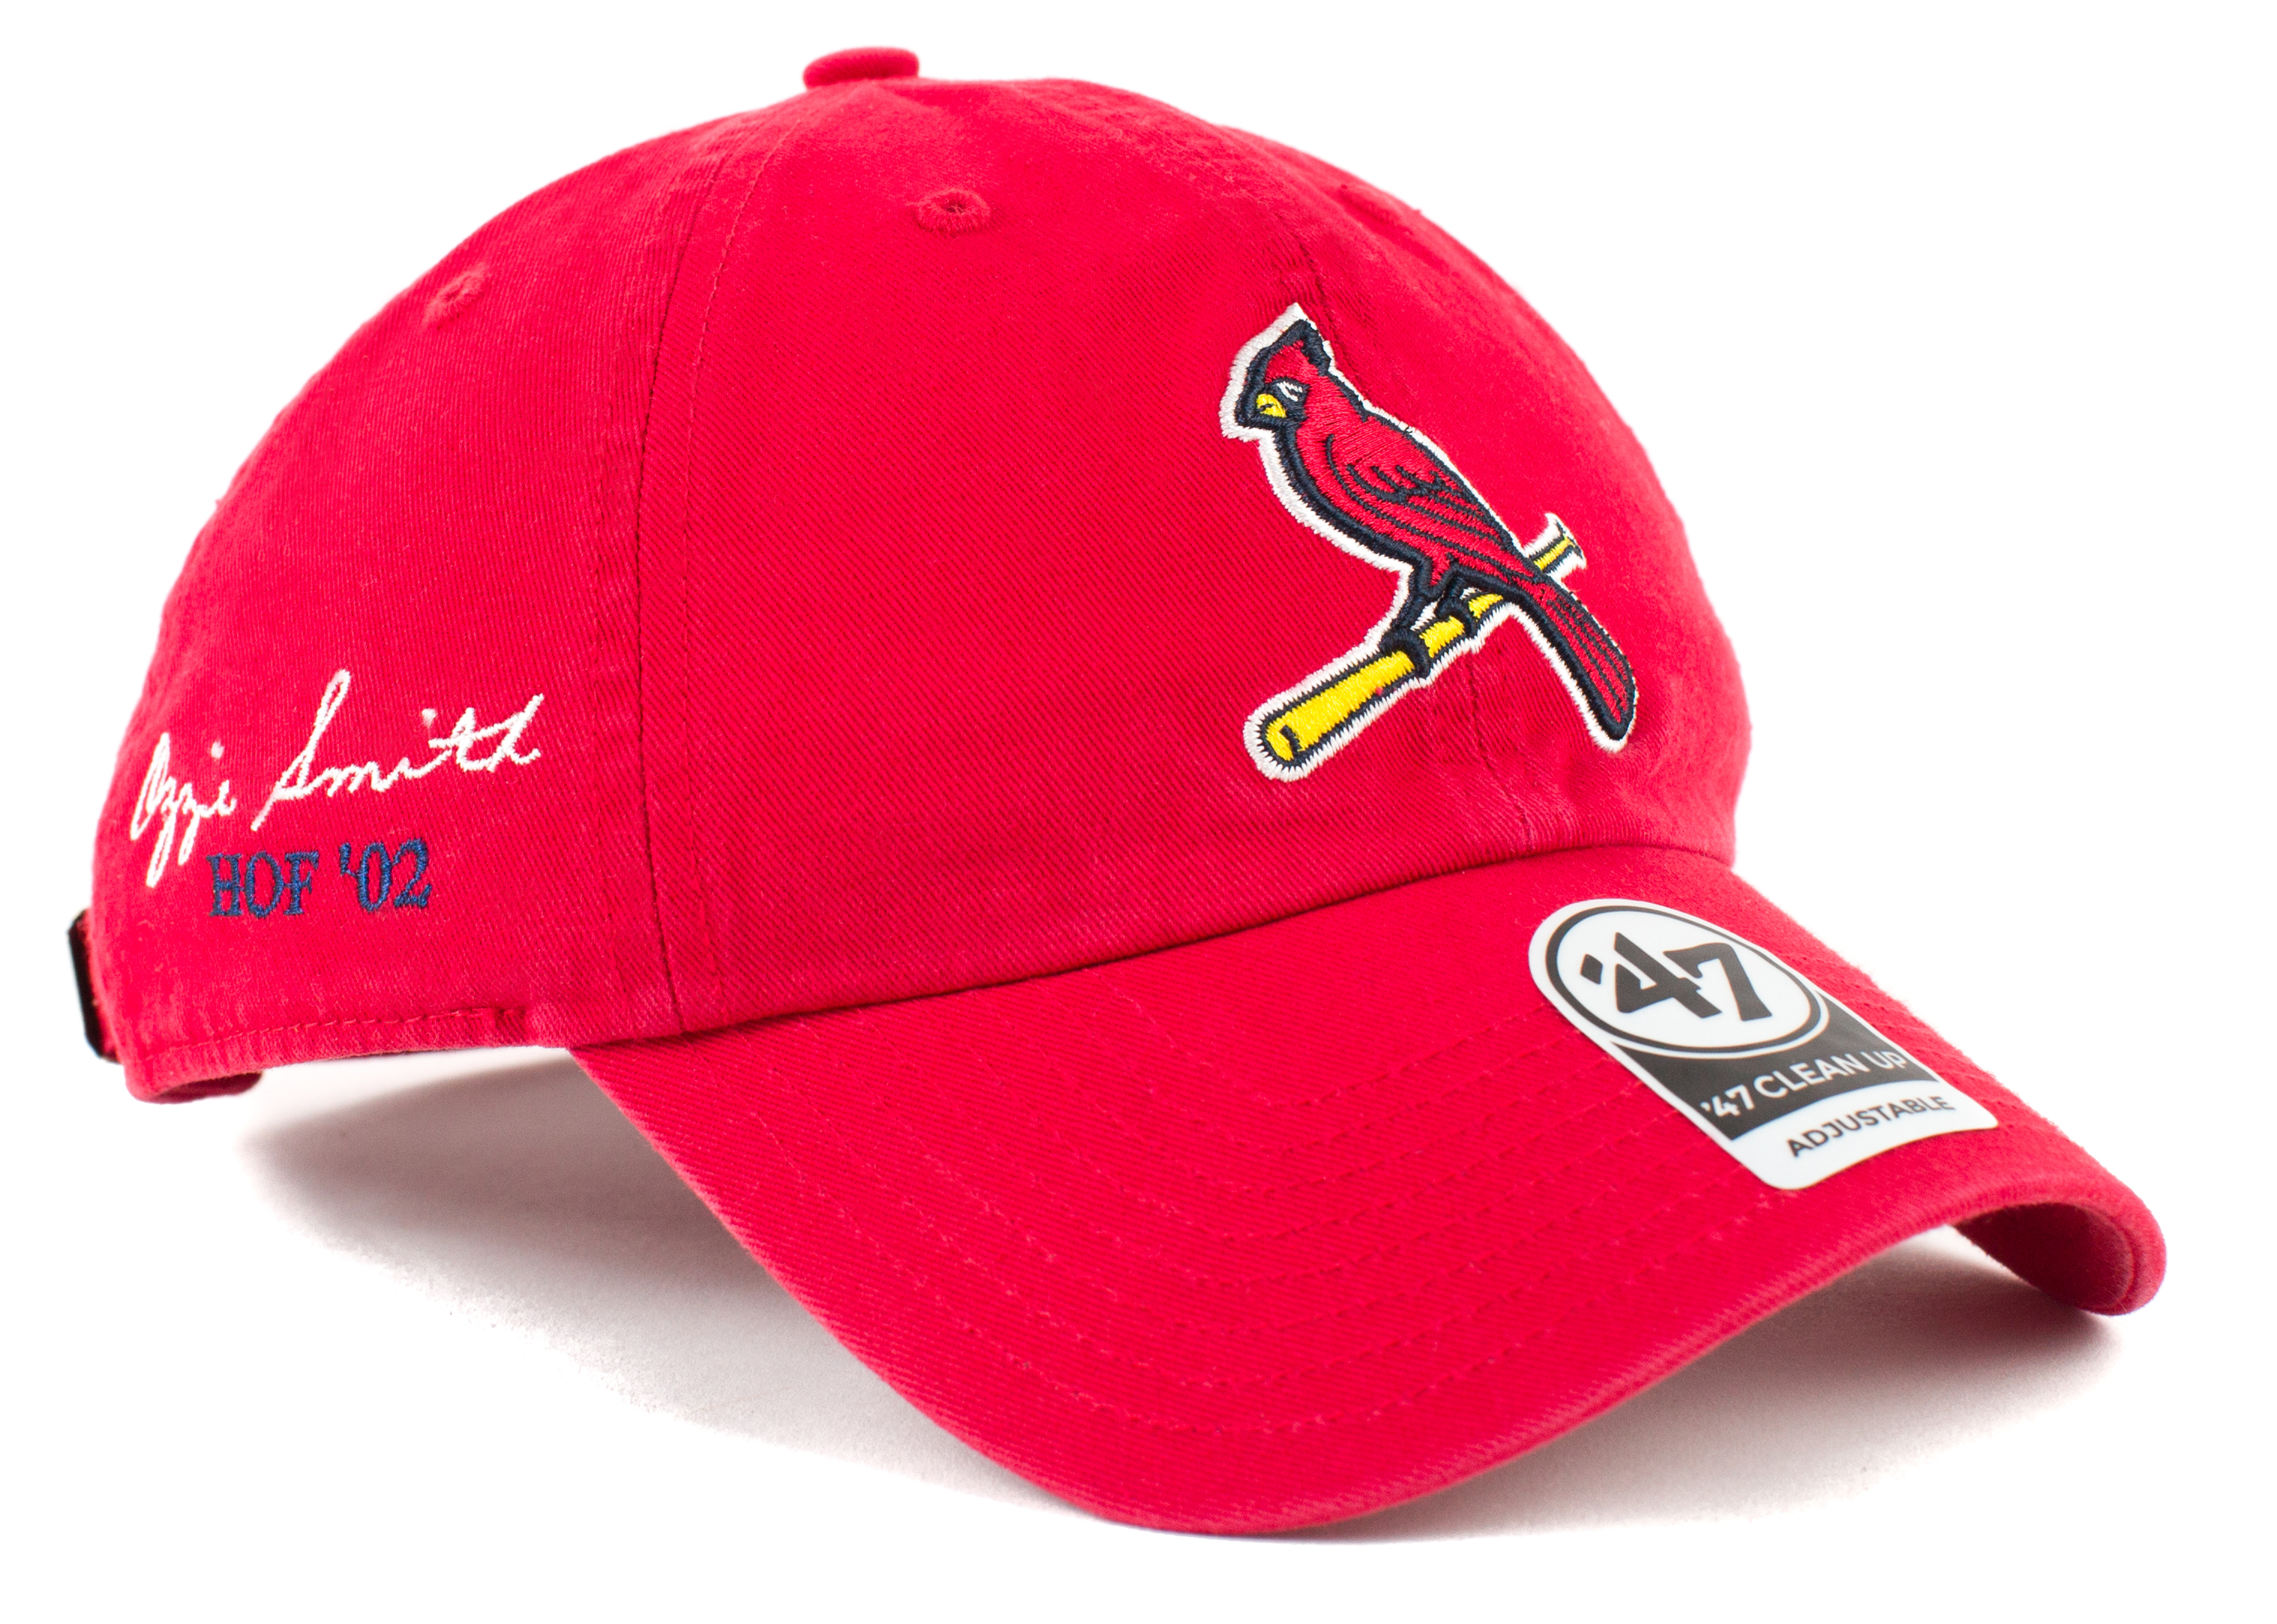 Ozzie Smith Mlb Custom Hat. Mlb Hall Of Fame Athlete Embroidery Now  Available Lids ed3994eba60a